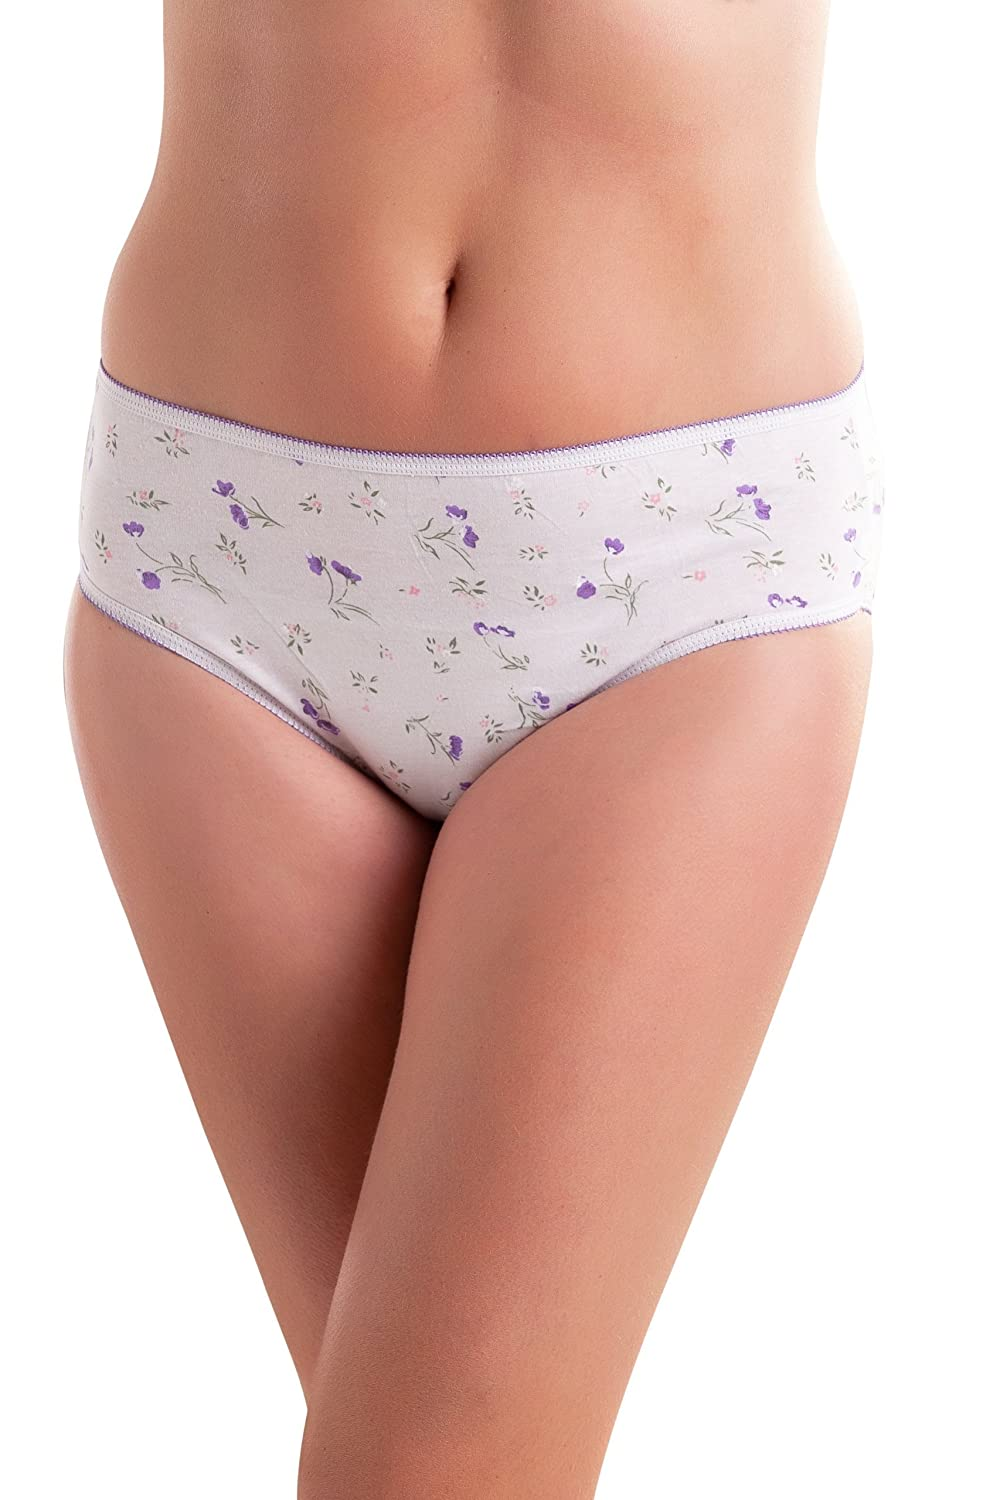 Passionelle Pack of 10 Womens Designer Assorted Print Design White Colour Bikini